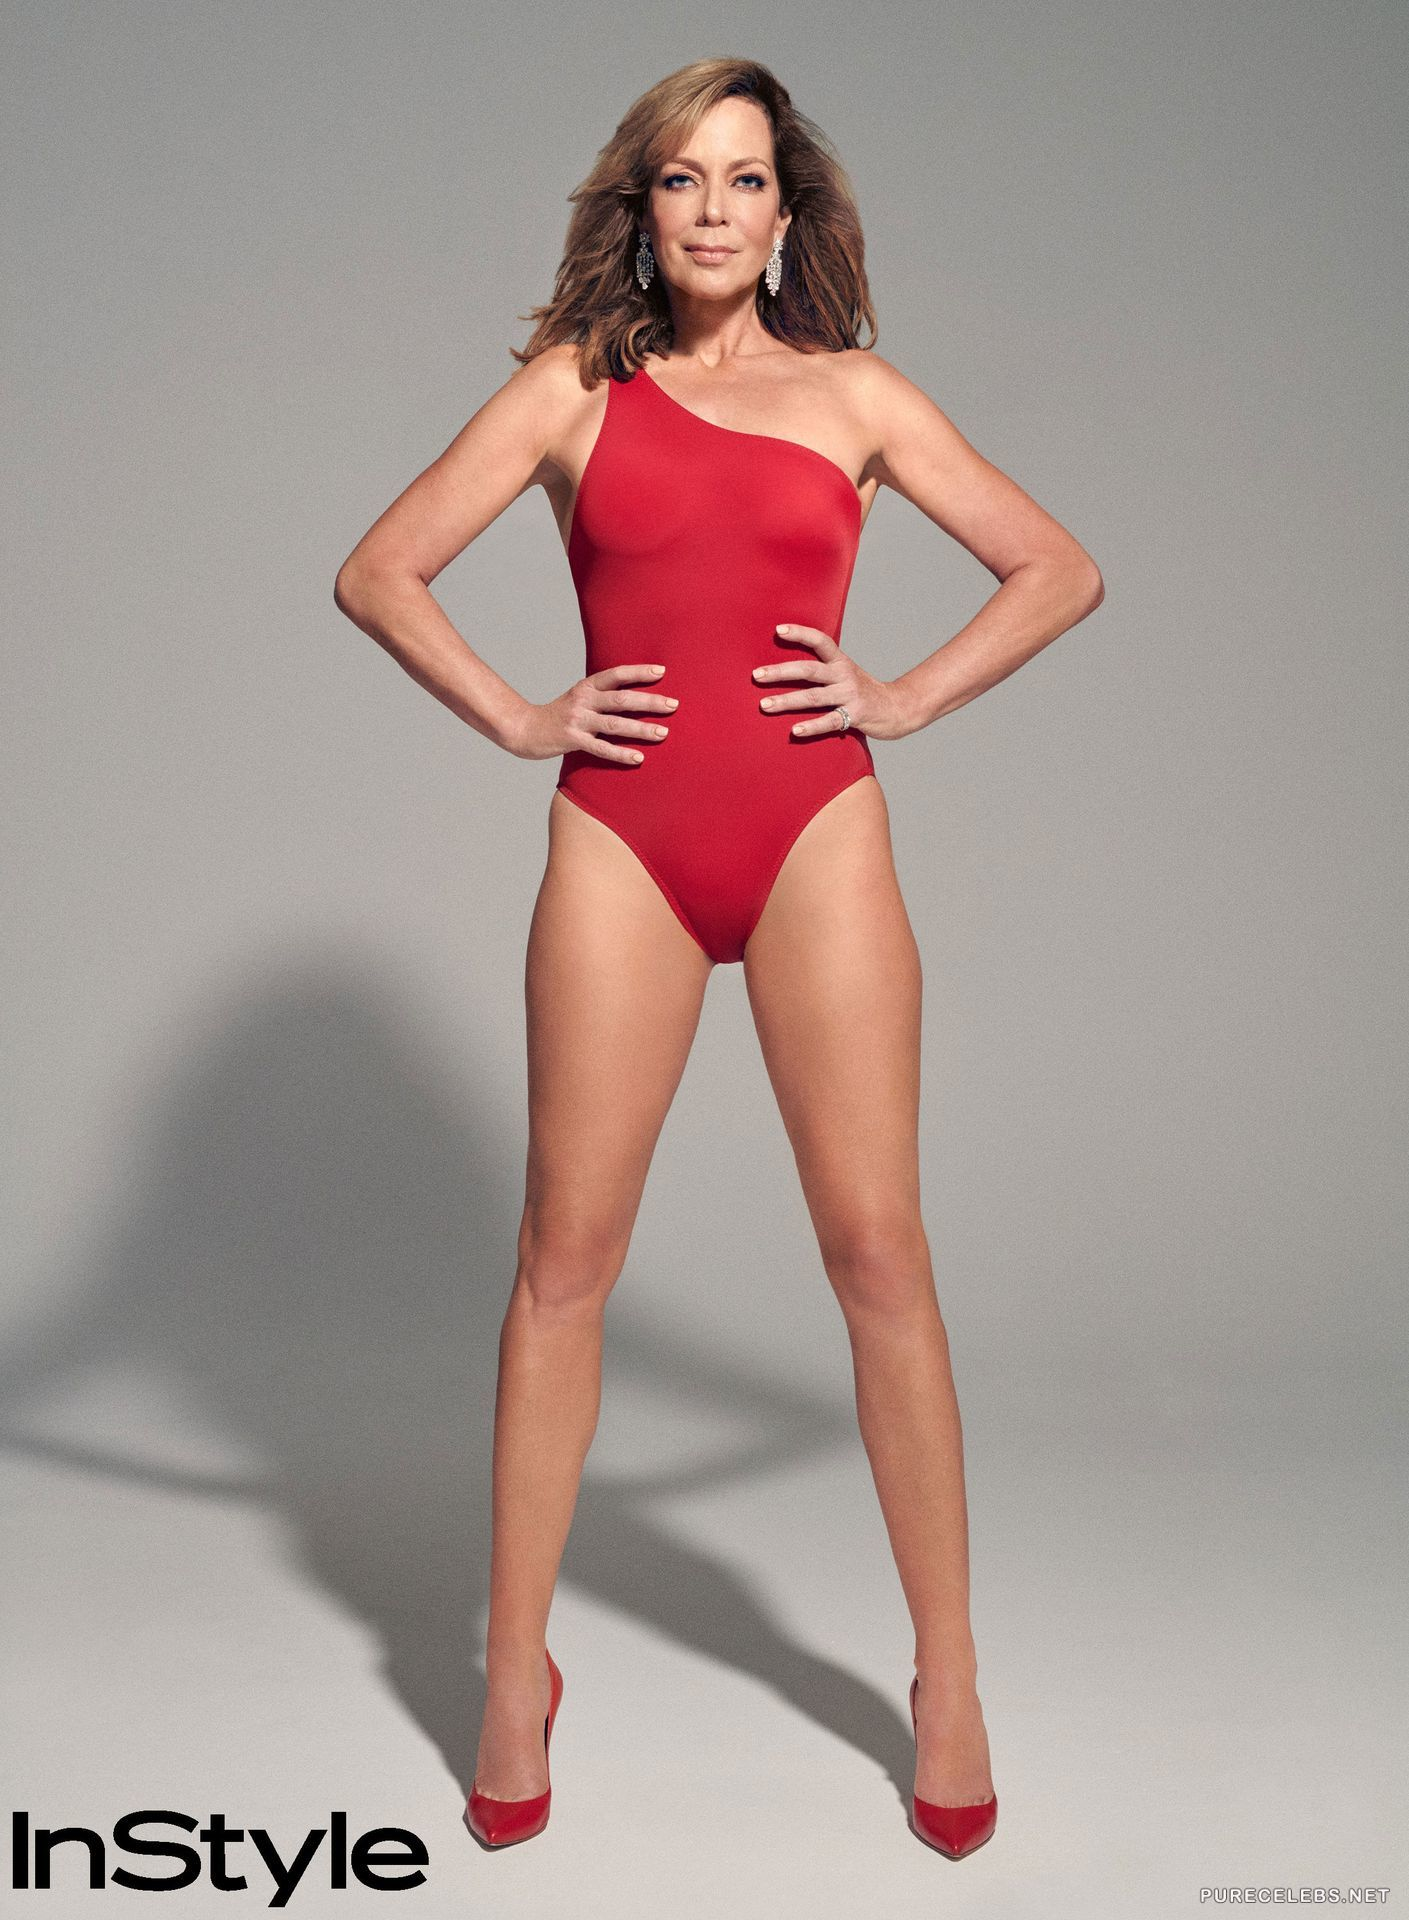 Allison Janney Posing Sexy In Red Swimsuit For InStyle